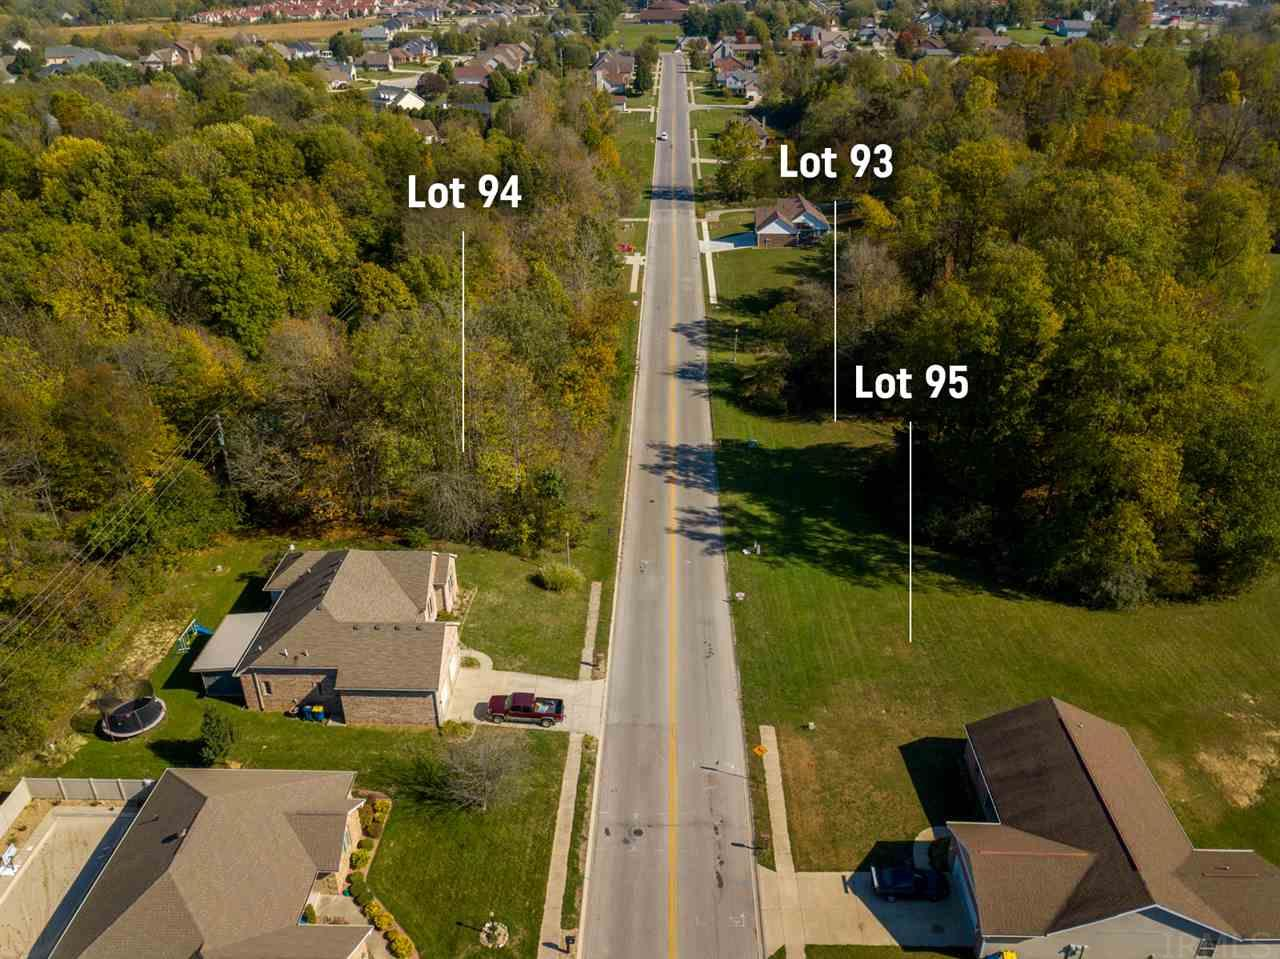 1023 Shadowlawn Dr - Lot 94, Greencastle, IN 46135